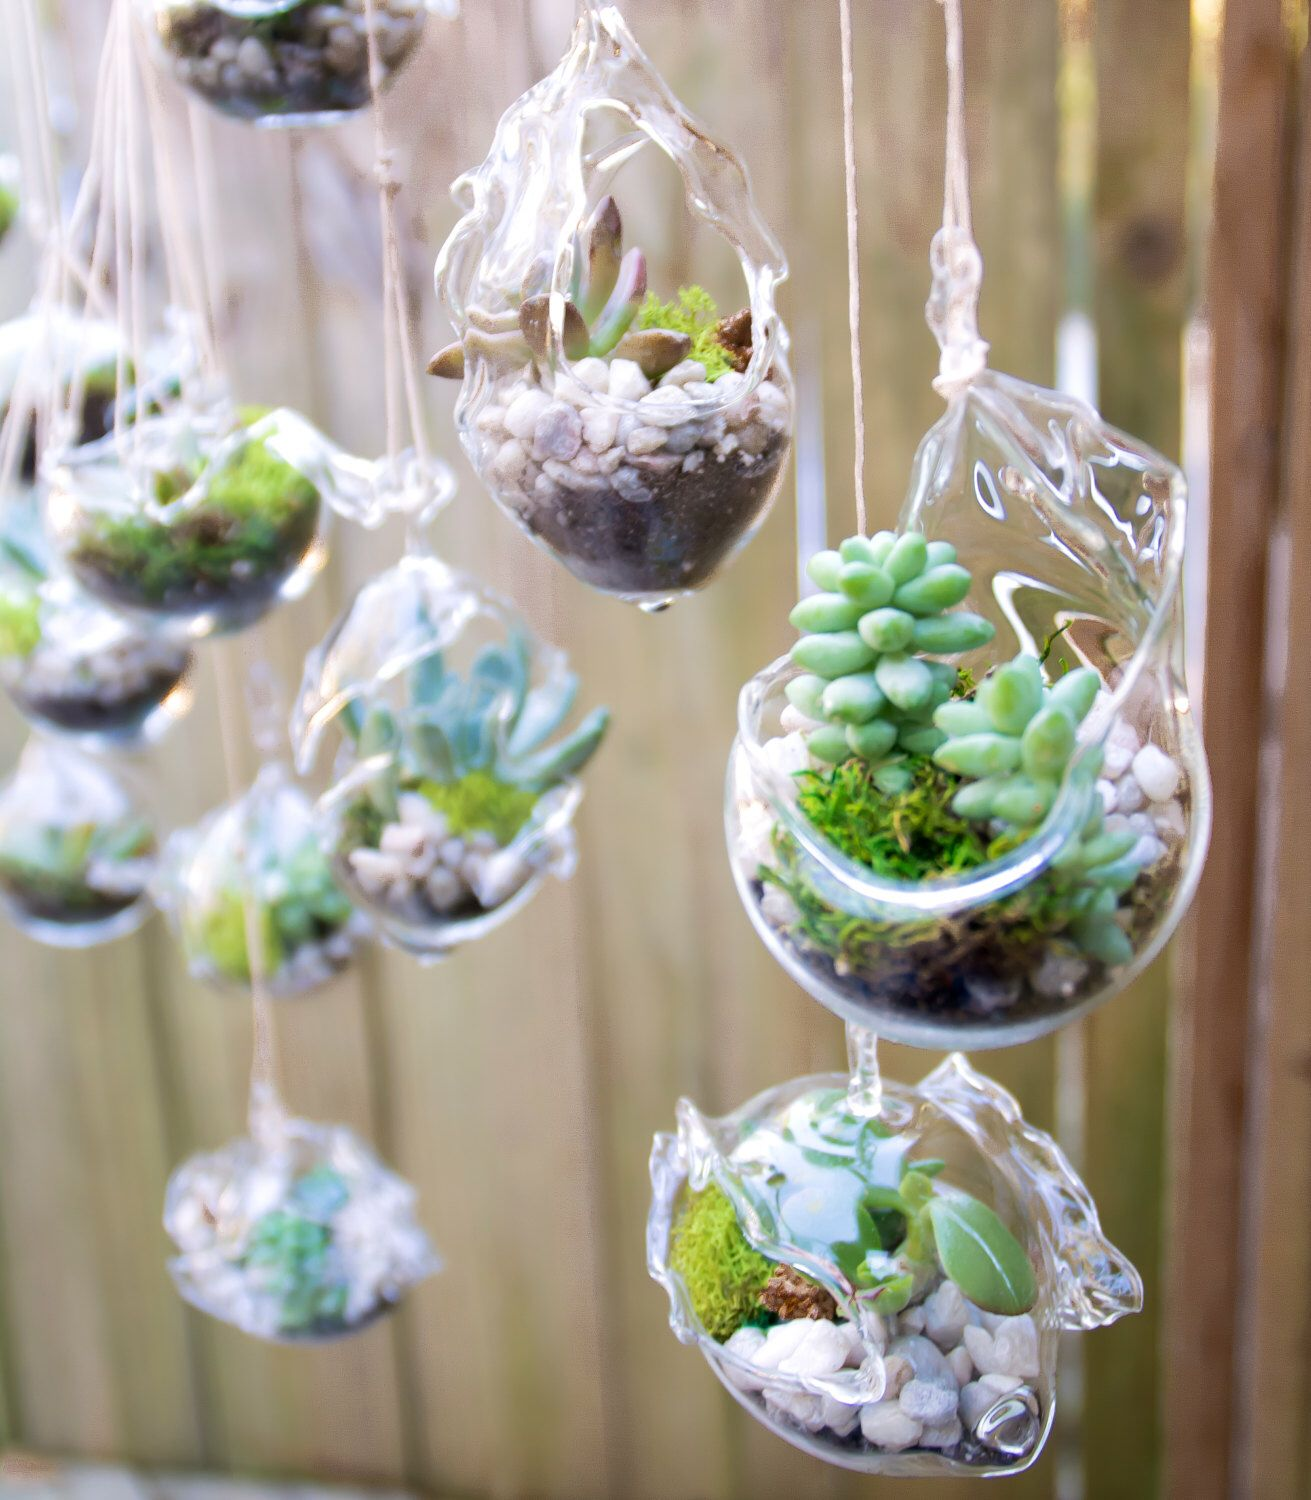 2 Miniature Glass Terrariums  Wedding Favors Hanging+ boxed by uniquelywed on Etsy https://www.etsy.com/listing/228463603/2-miniature-glass-terrariums-wedding